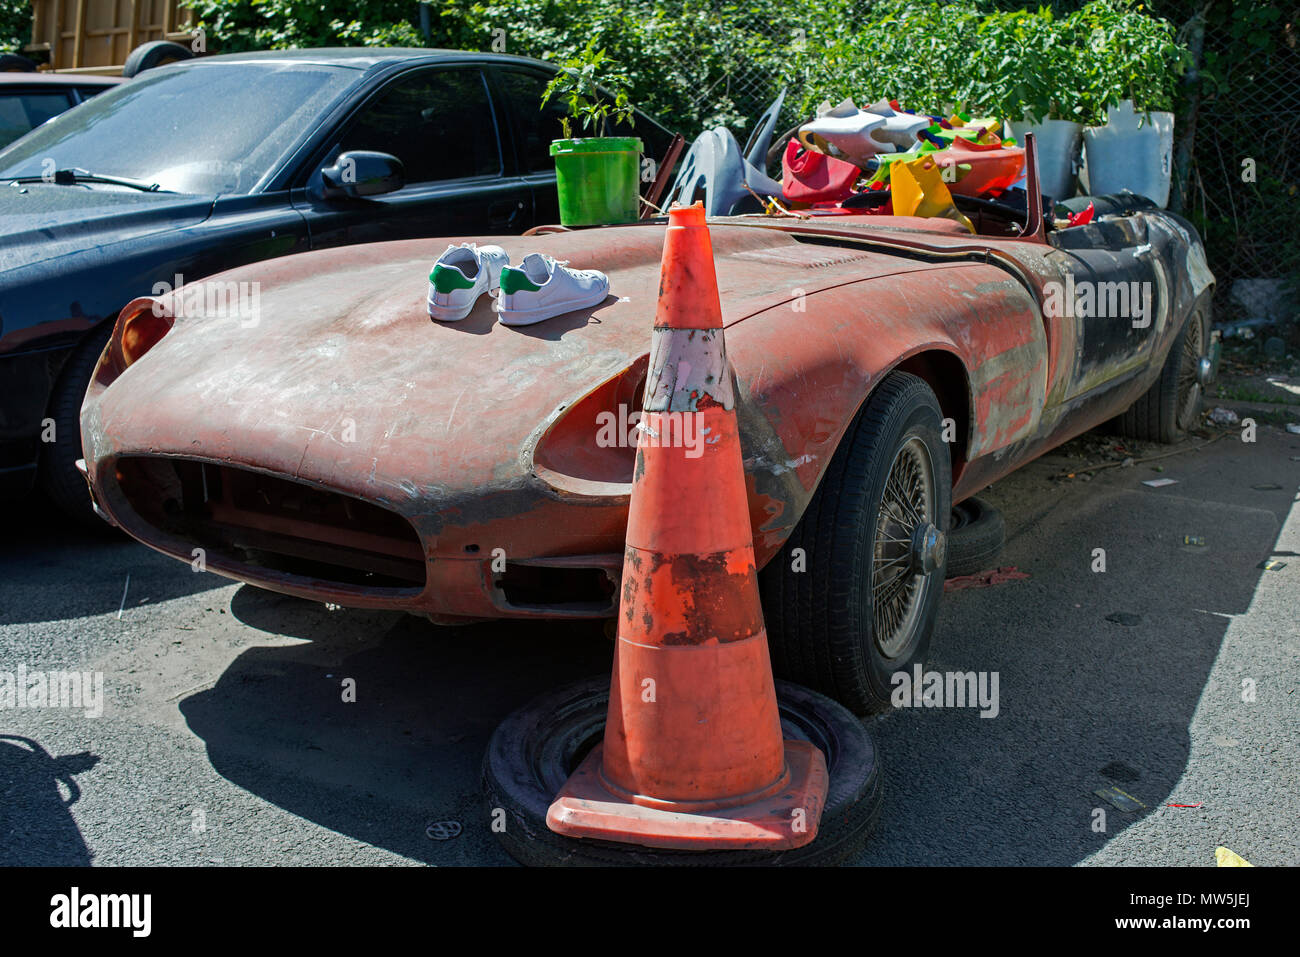 A Wrecked Jaguar Convertible Classic Vintage Car In The Street In A Park With Plastic Stuff On It In Istanbul Stock Photo Alamy